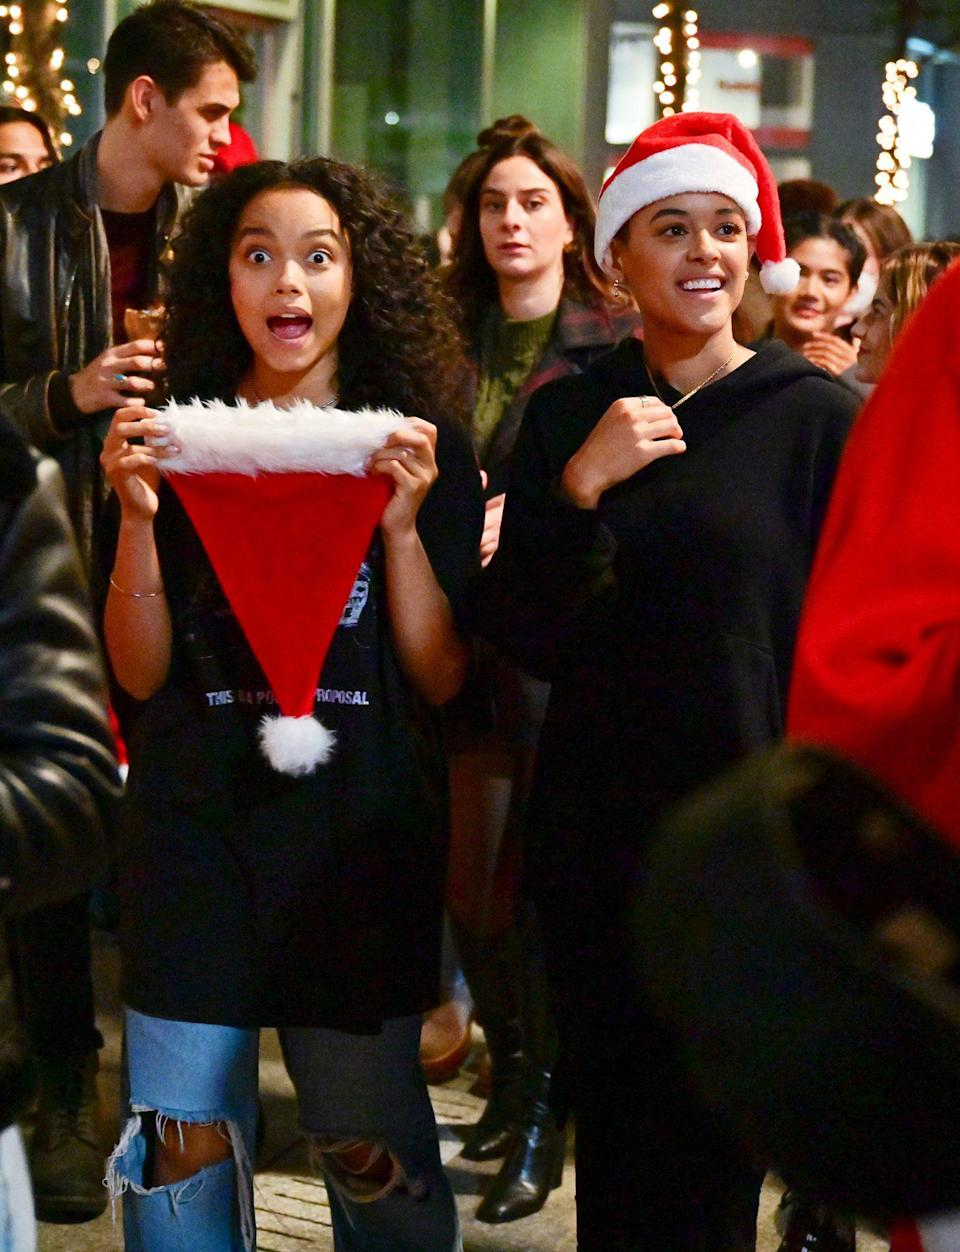 <p>Whitney Peak and Jordan Alexander get into the holiday spirit on the set of <i>Gossip Girl </i>on July 16 in N.Y.C. </p>